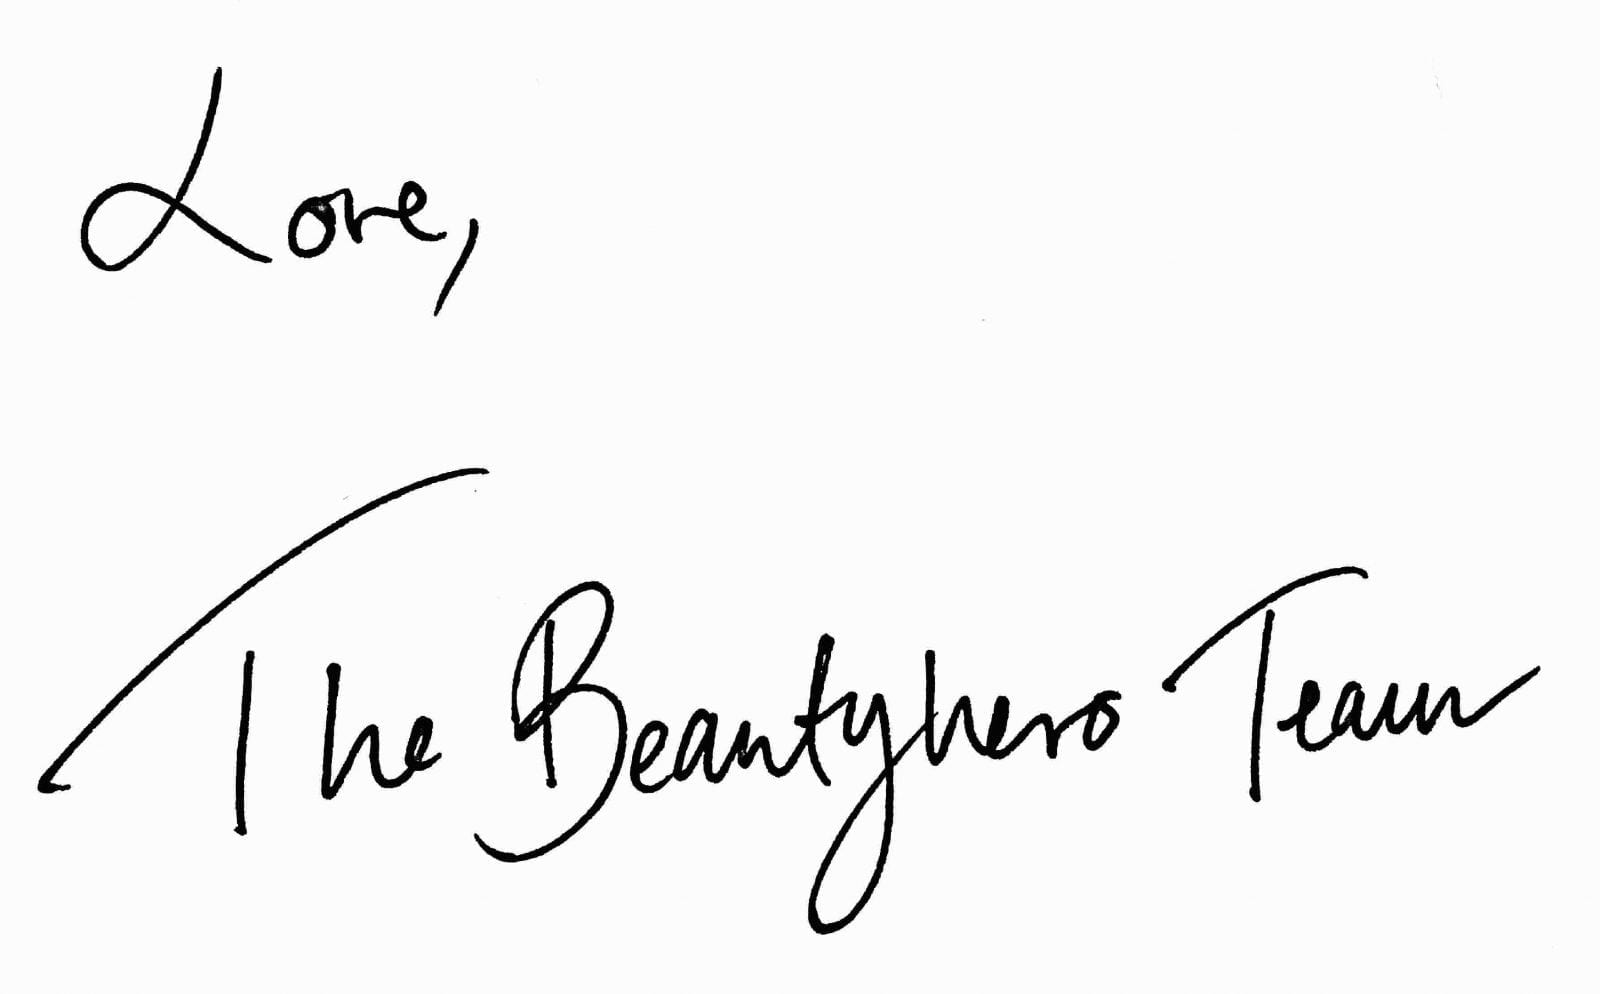 Love The Beautyhero Team Signature